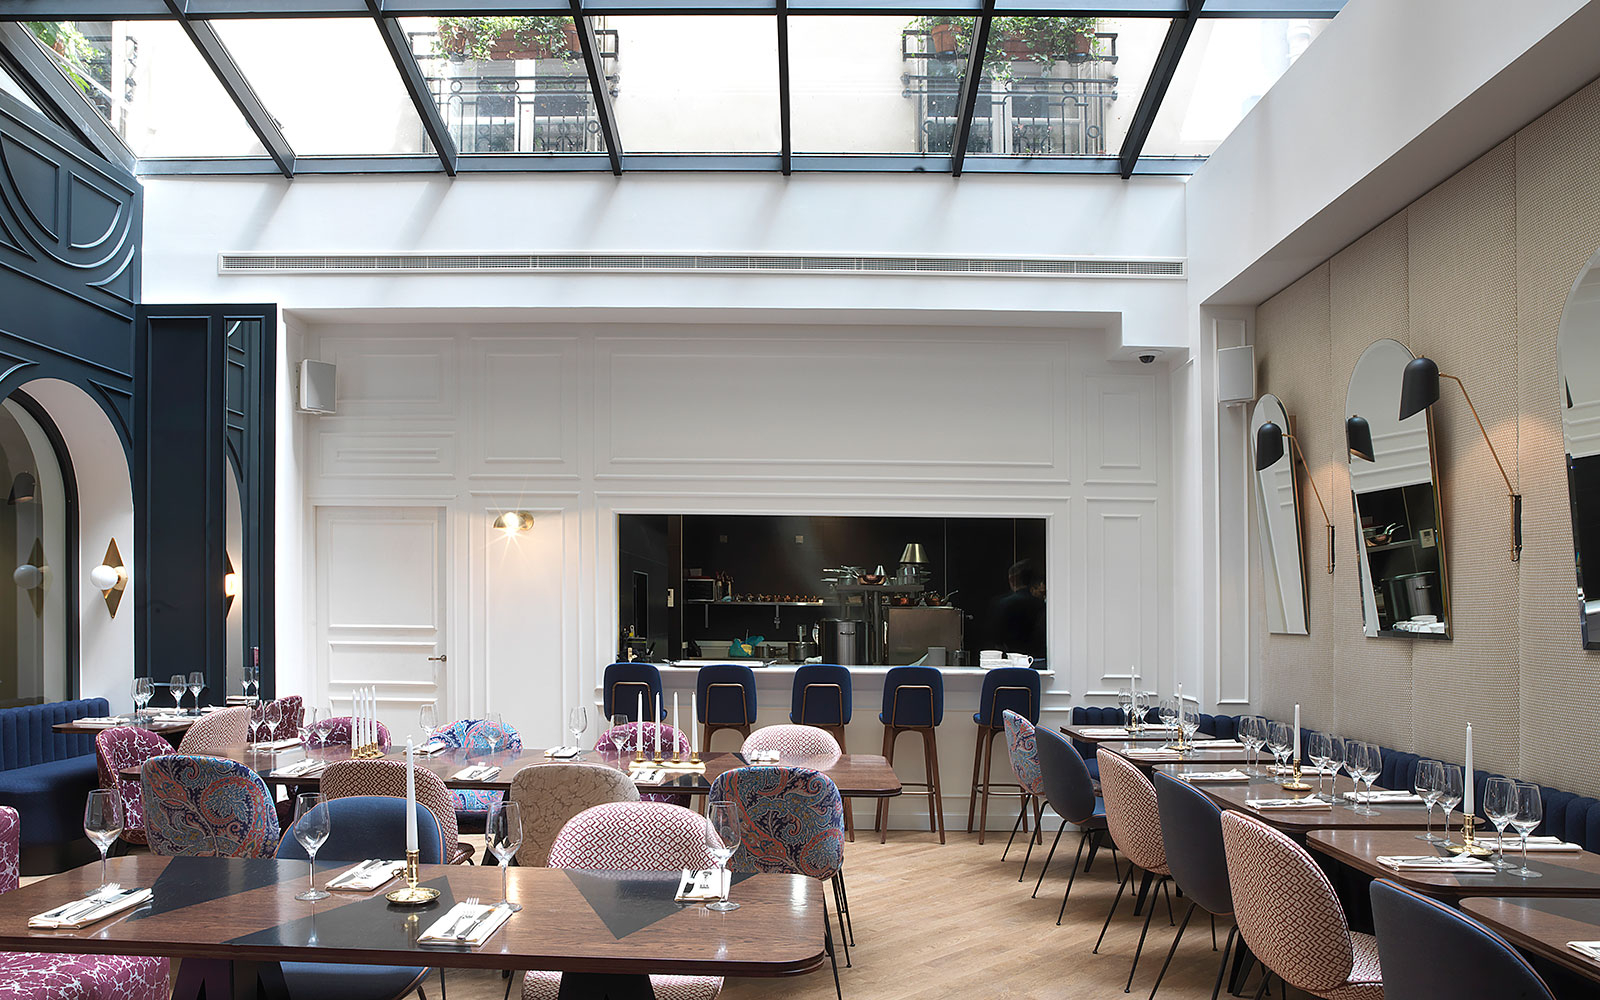 Hotel bachaumont paris refreshes dining in 2nd arrondissement travel leisure - Boutique cuisine paris ...